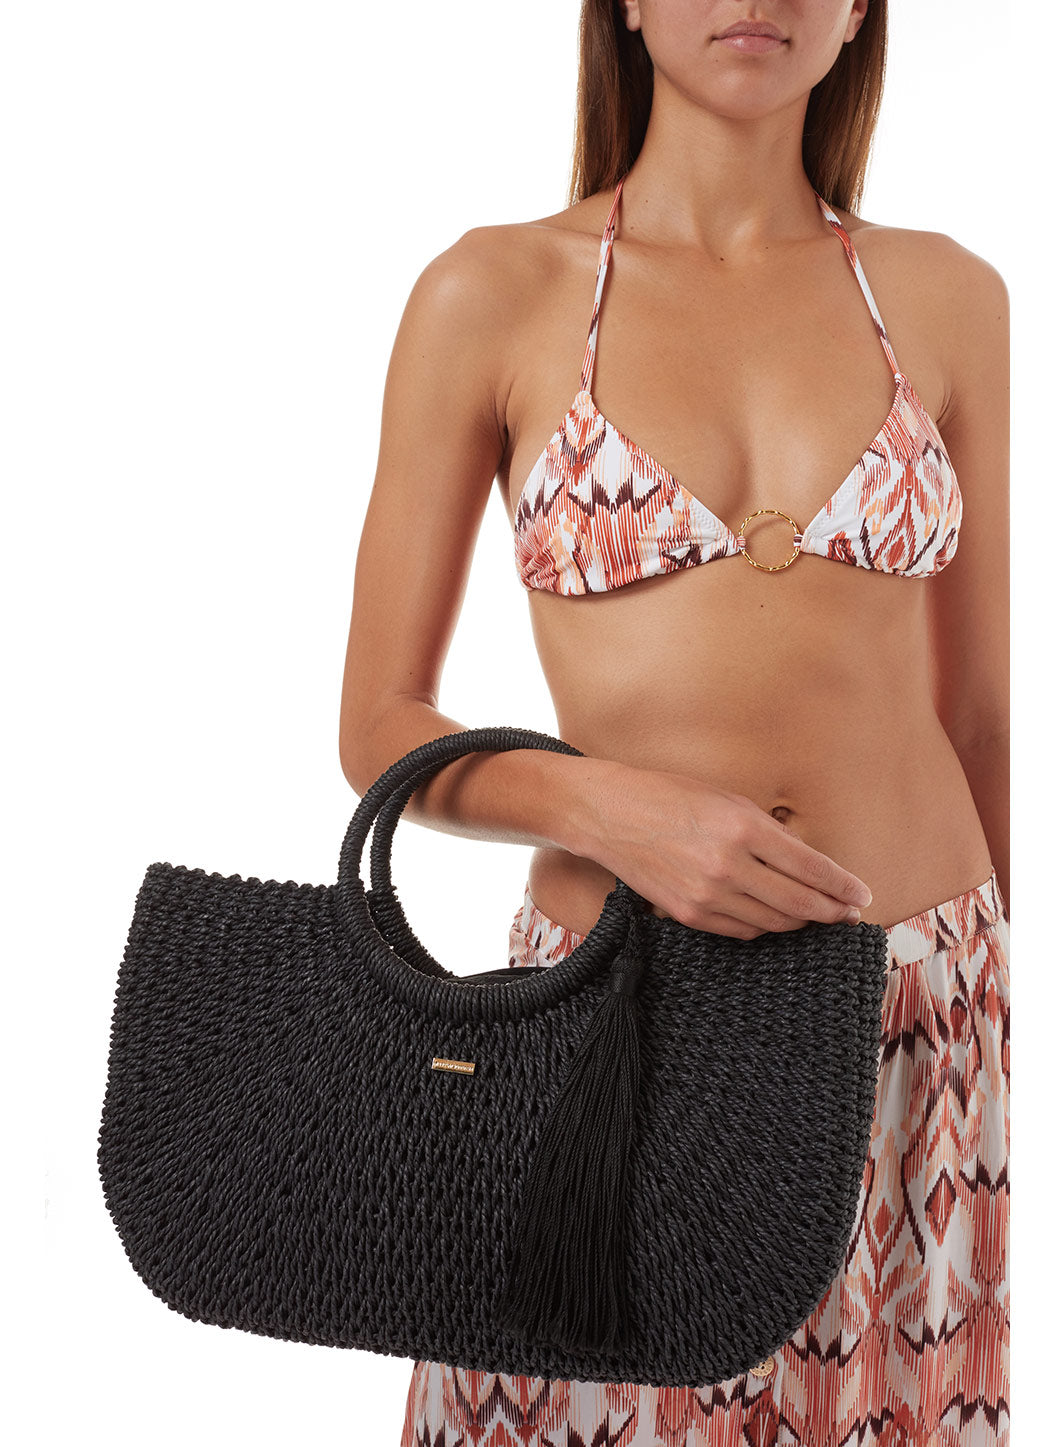 Sorrento Woven Basket Tassle Bag Black - Melissa Odabash Bags